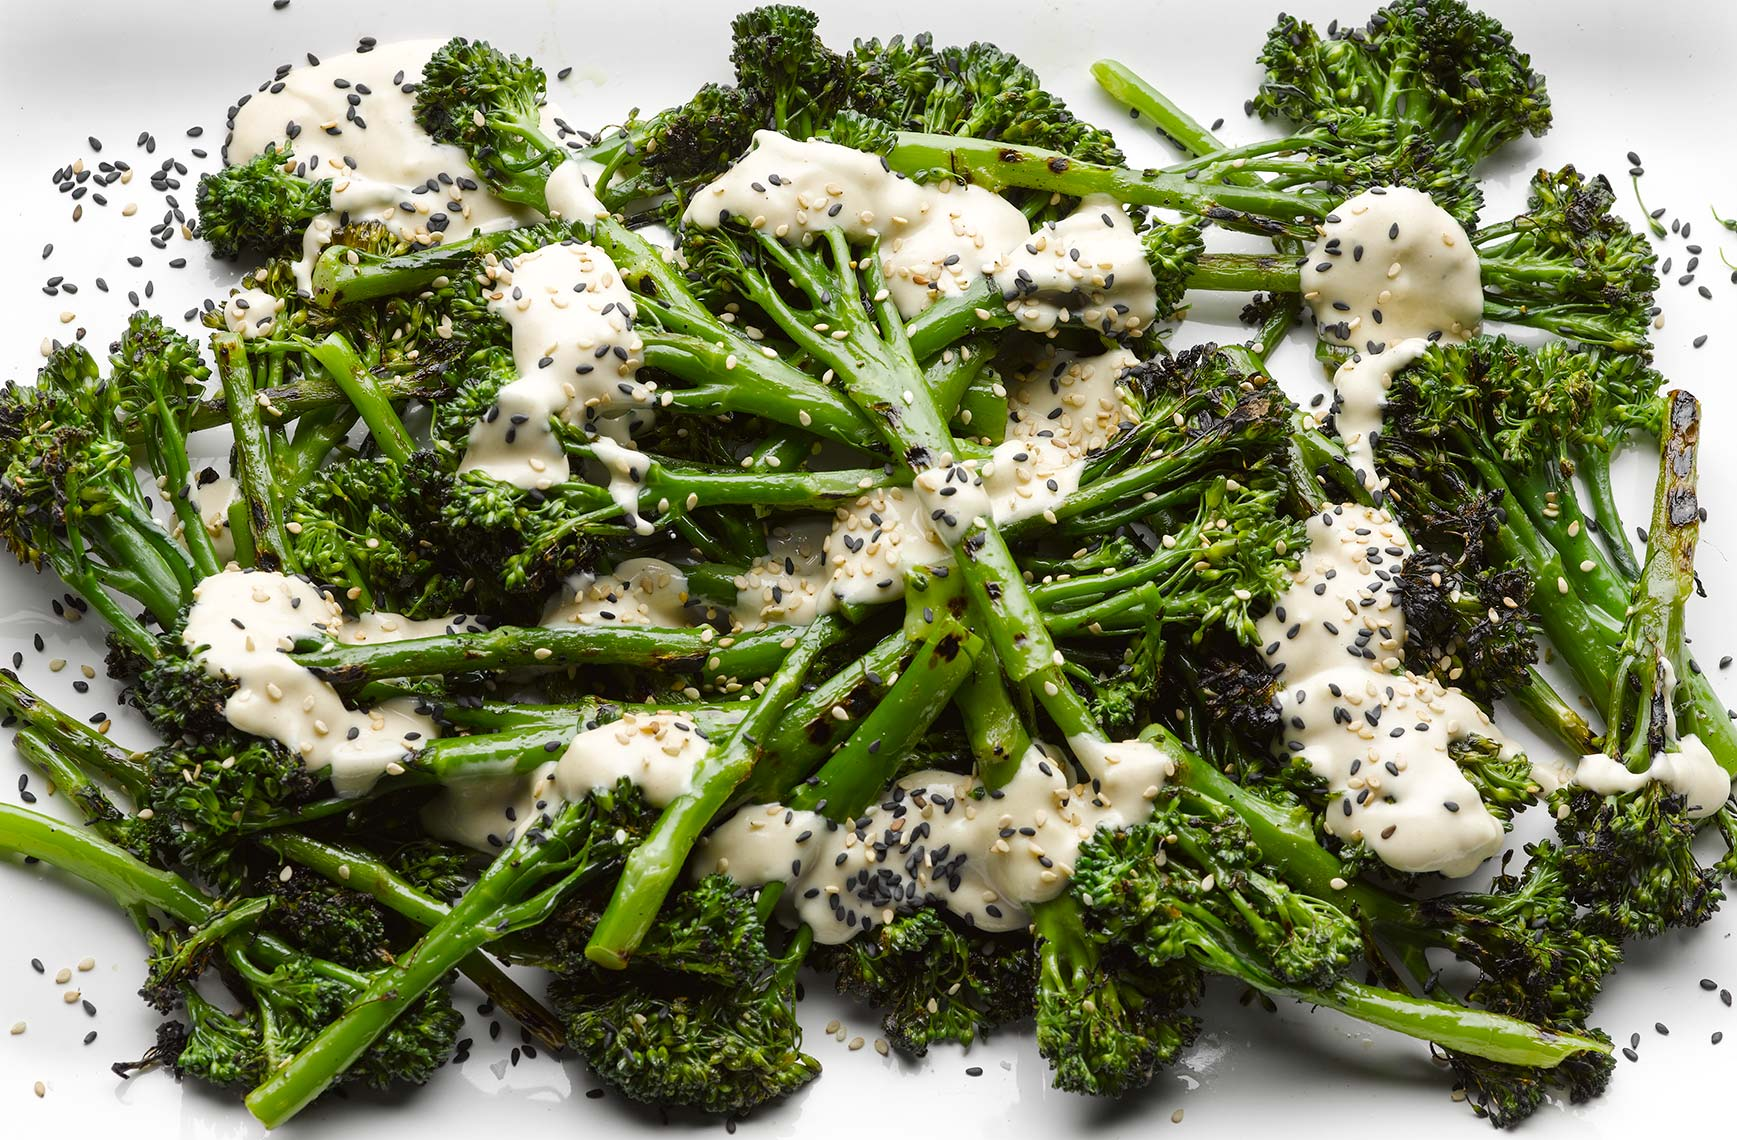 Ottolenghi Broccoli and tahini | Colin Campbell-Food Photographer